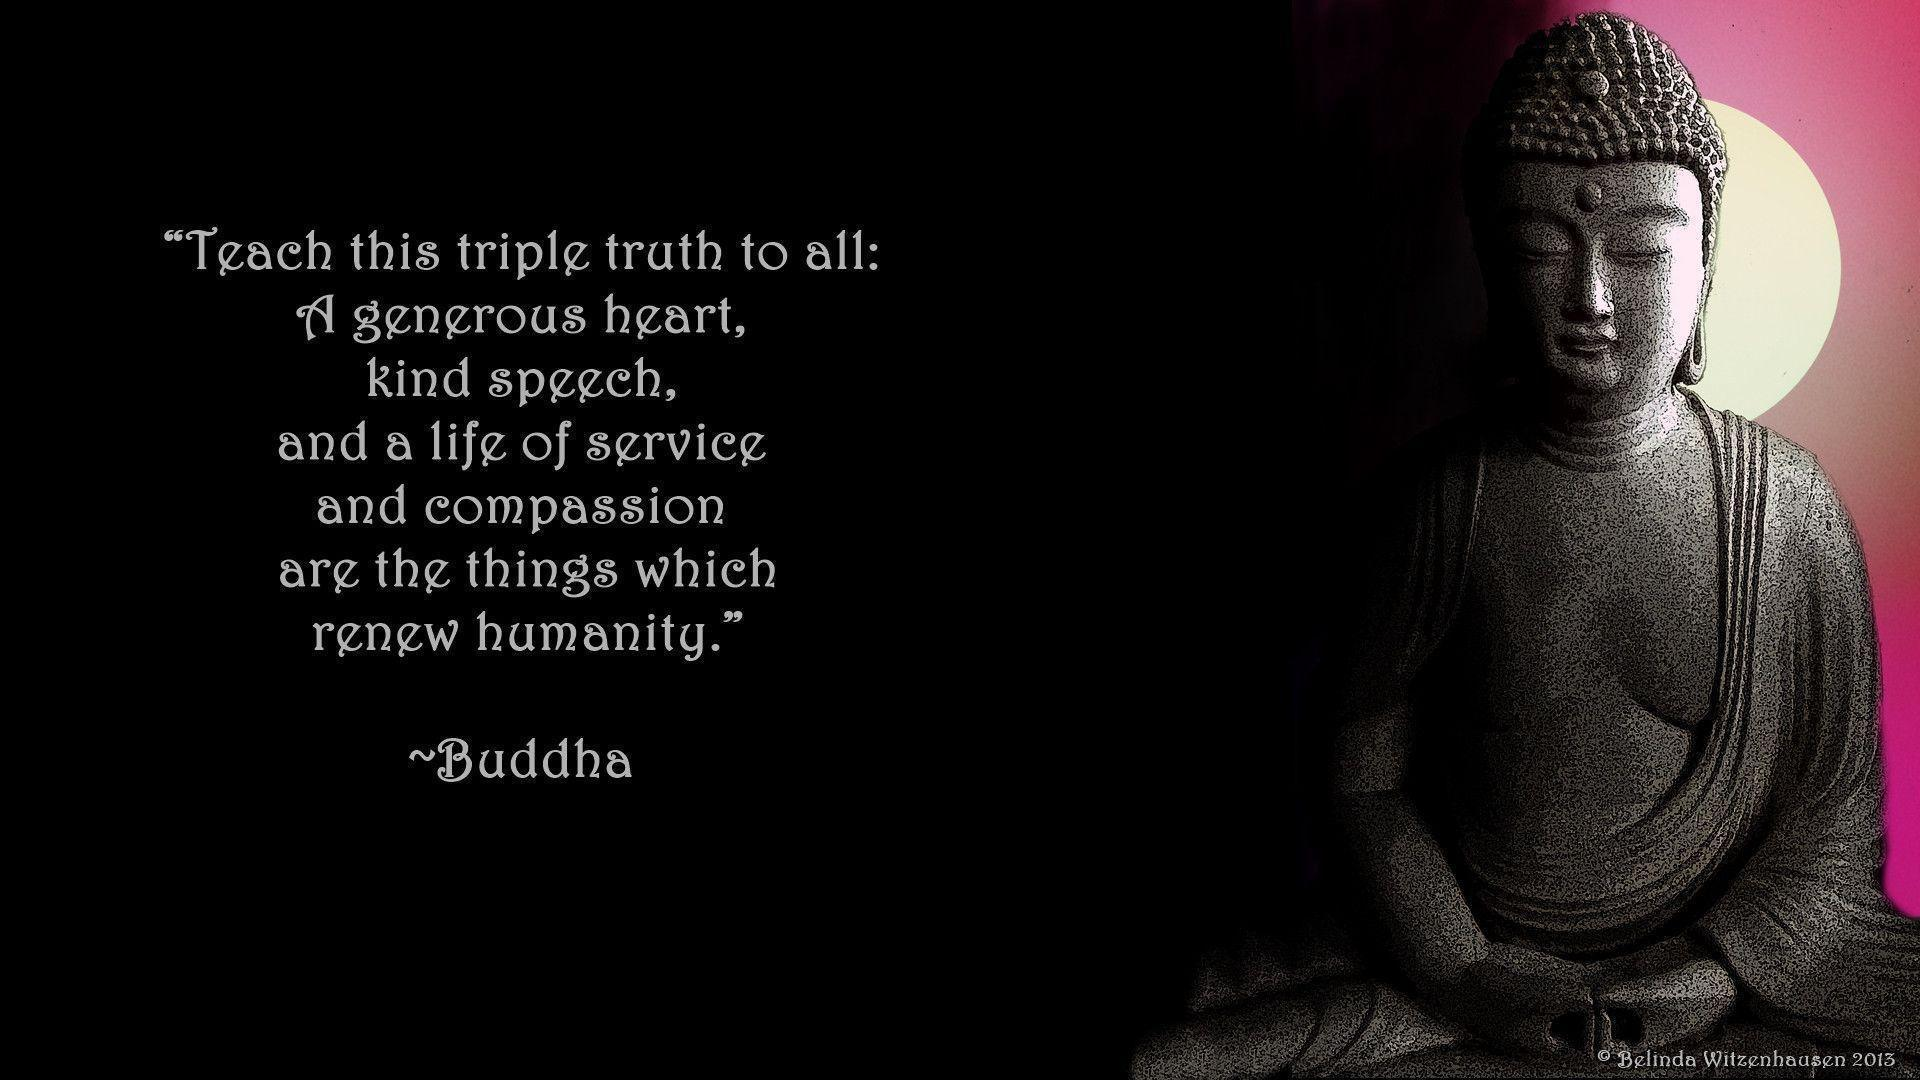 WALLPAPER WITH POSITIVE QUOTE BY LORD BUDDHA: TRIPLE TRUTH FOR ALL ...